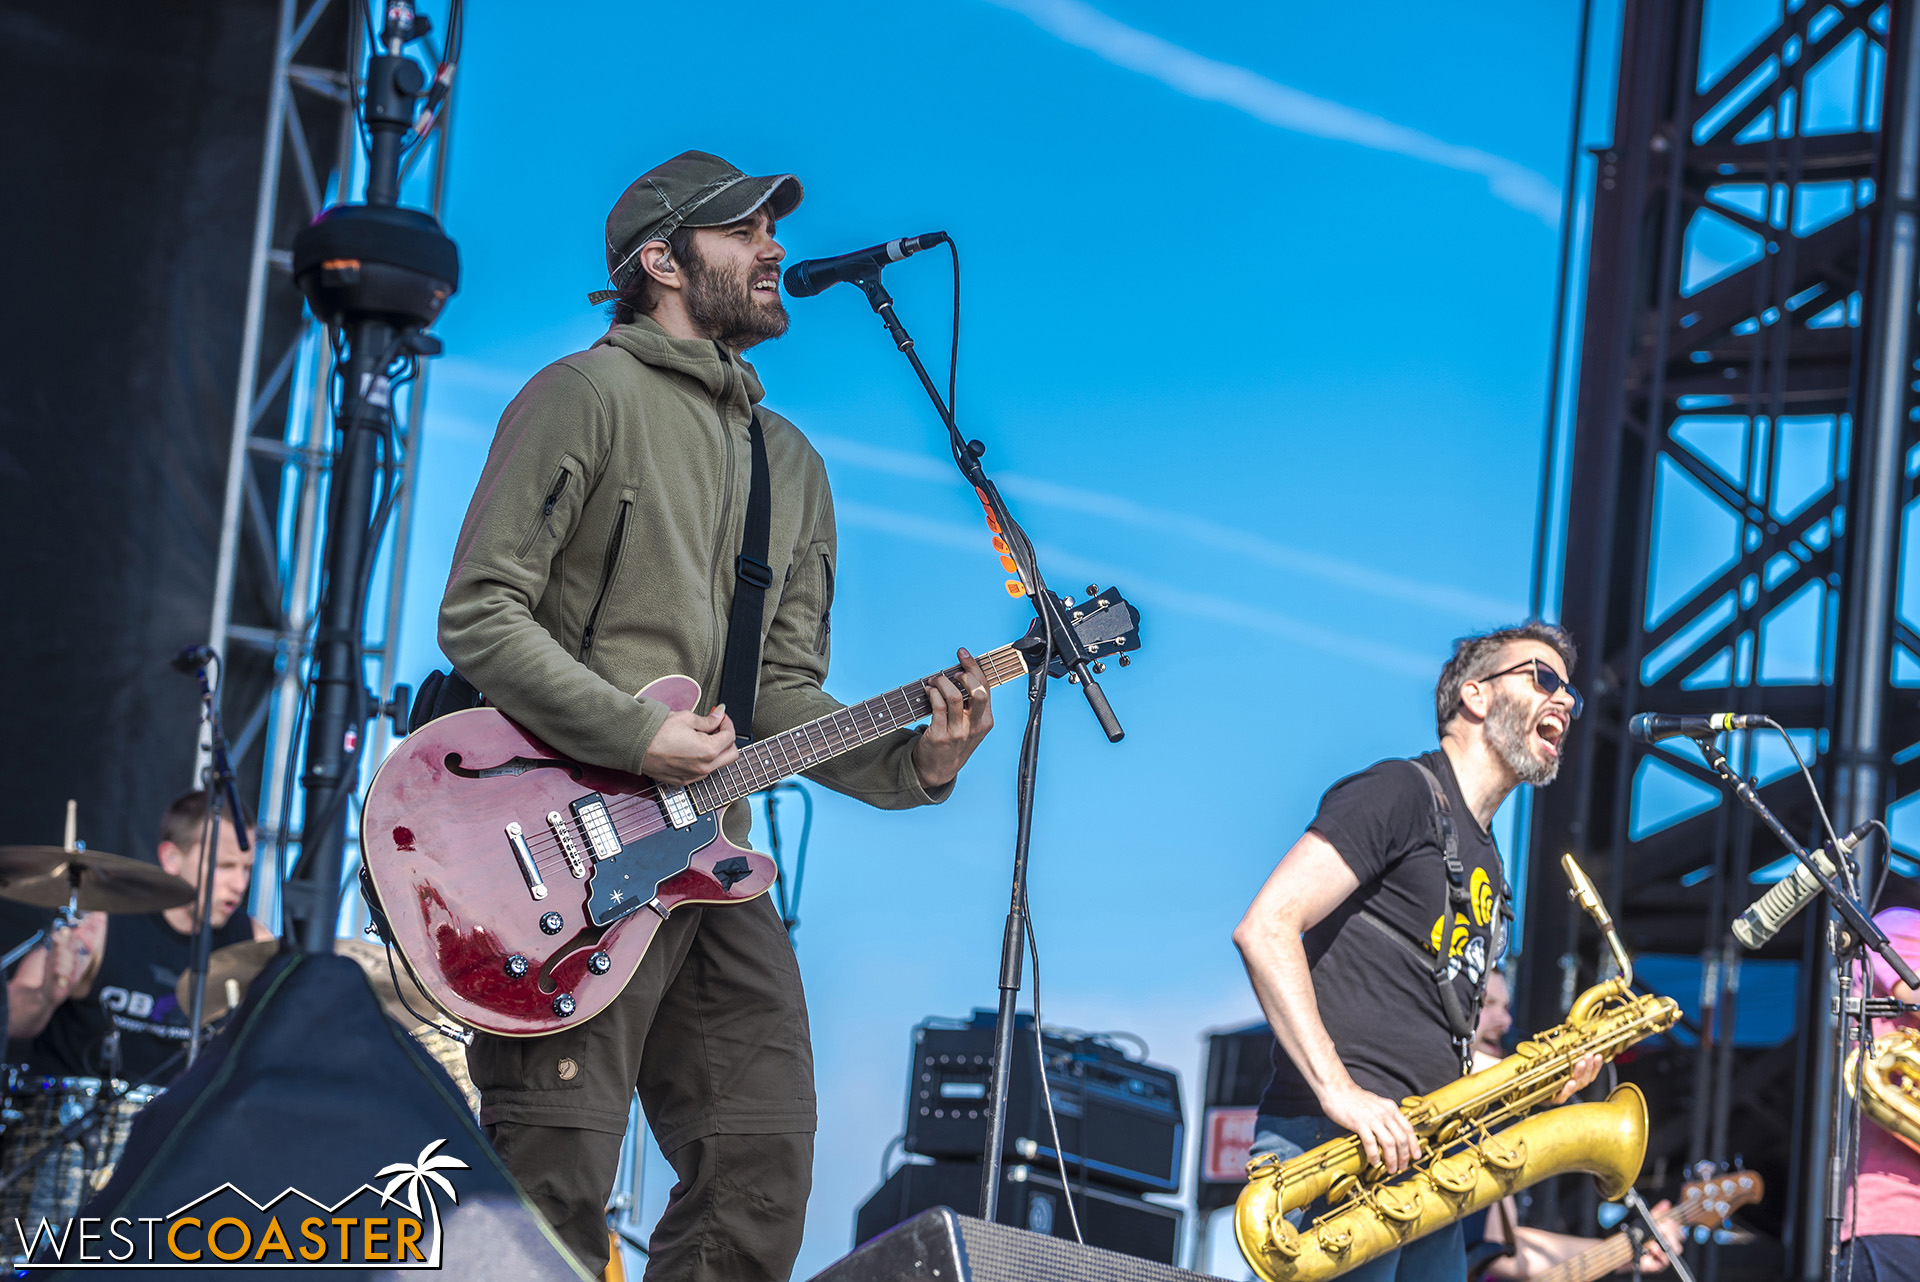 The Streetlight Manifesto performs at Back to the Beach.